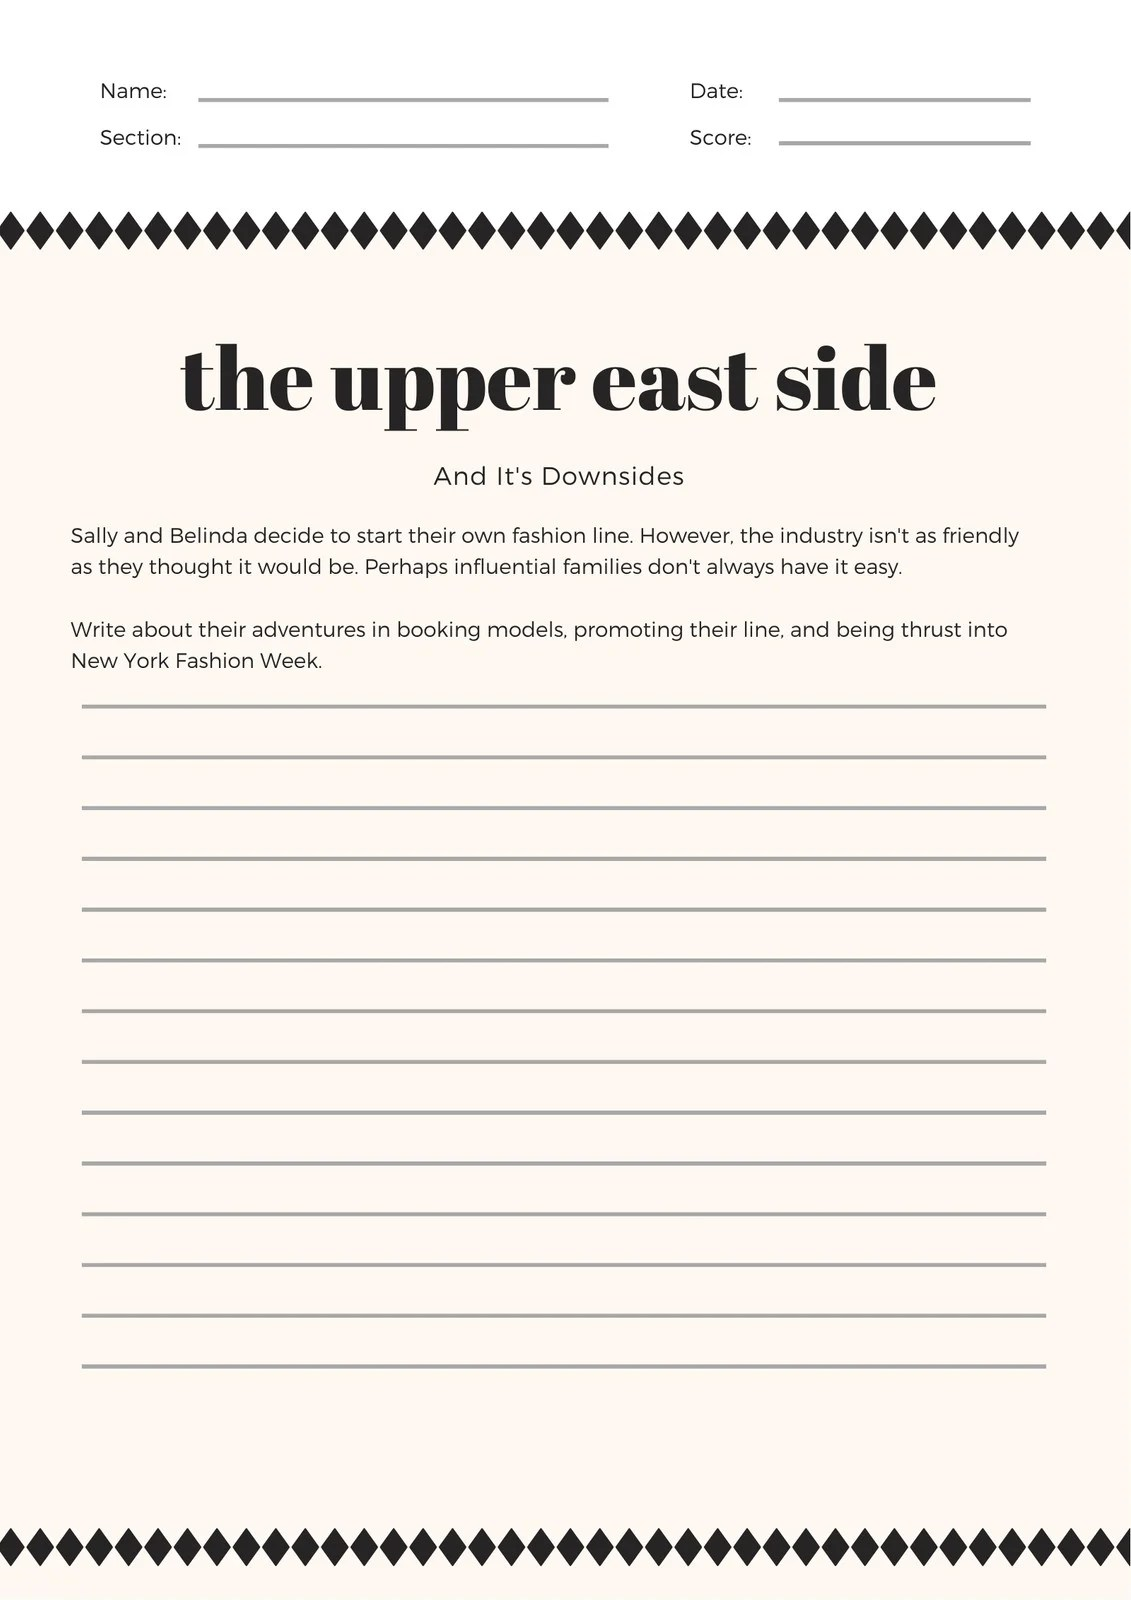 Cream Simple Diamond Patterned Writing Prompt Worksheet